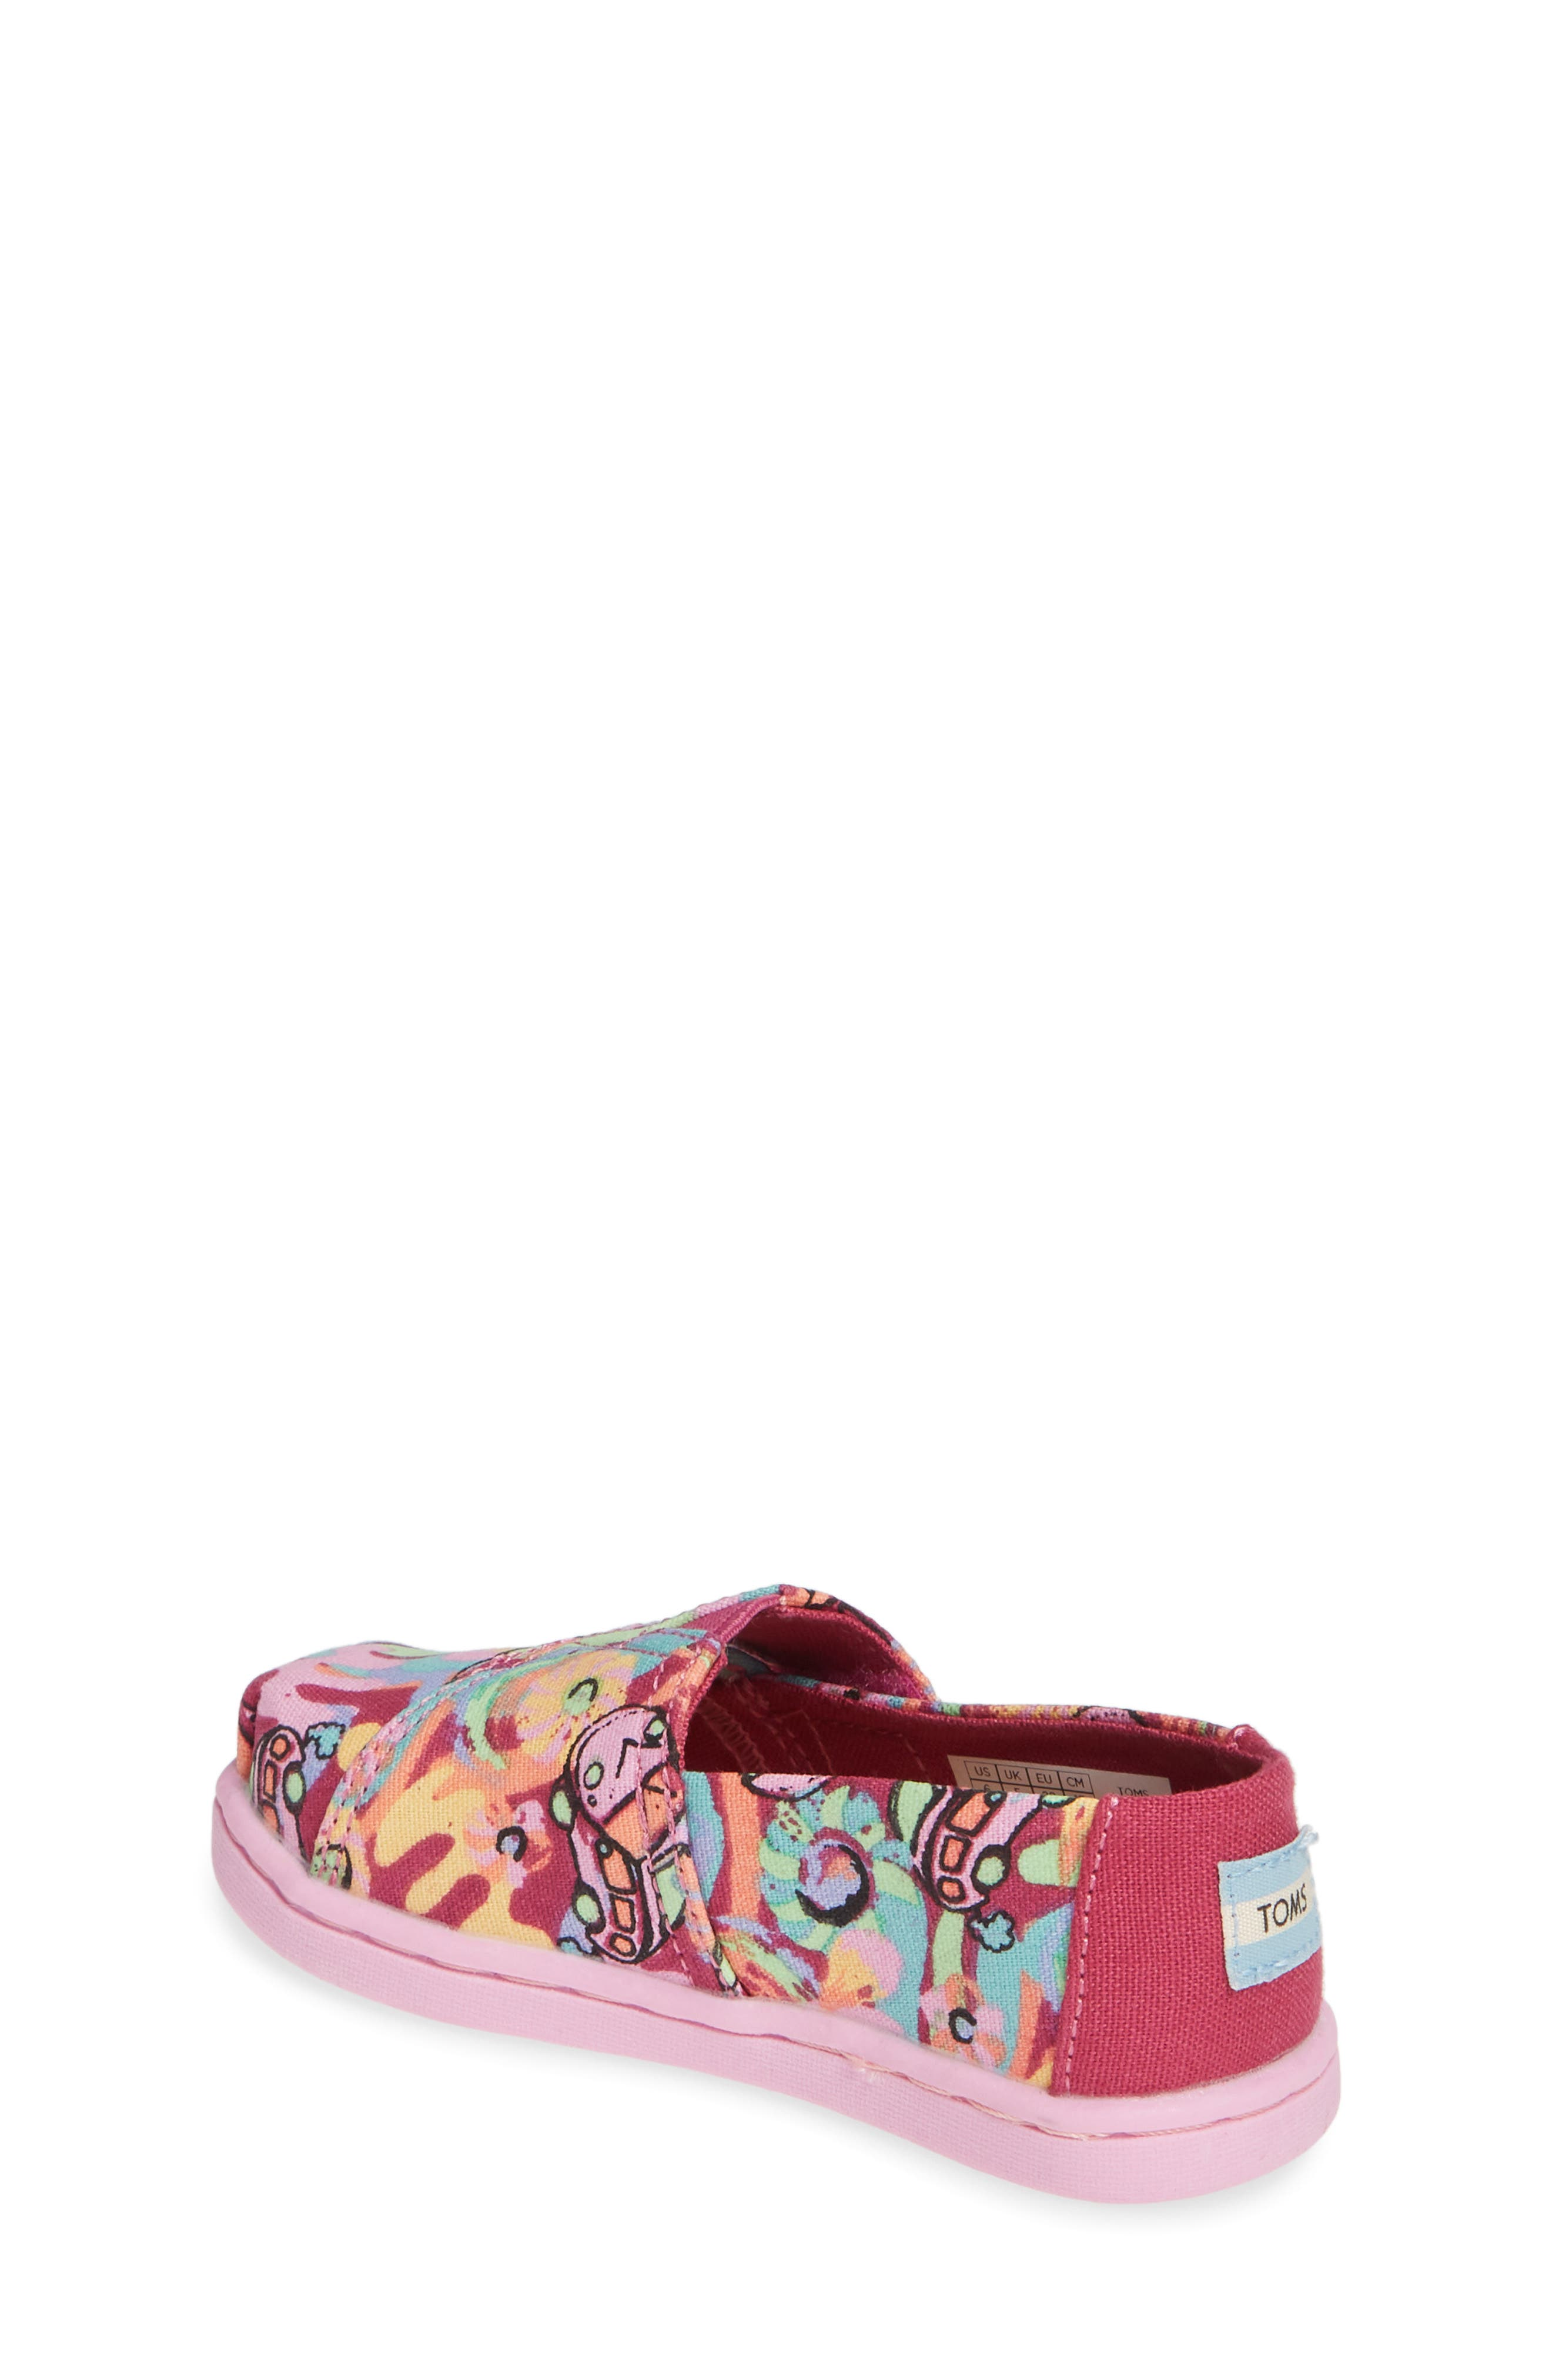 1a14e0bf Kids' TOMS Shoes | Nordstrom